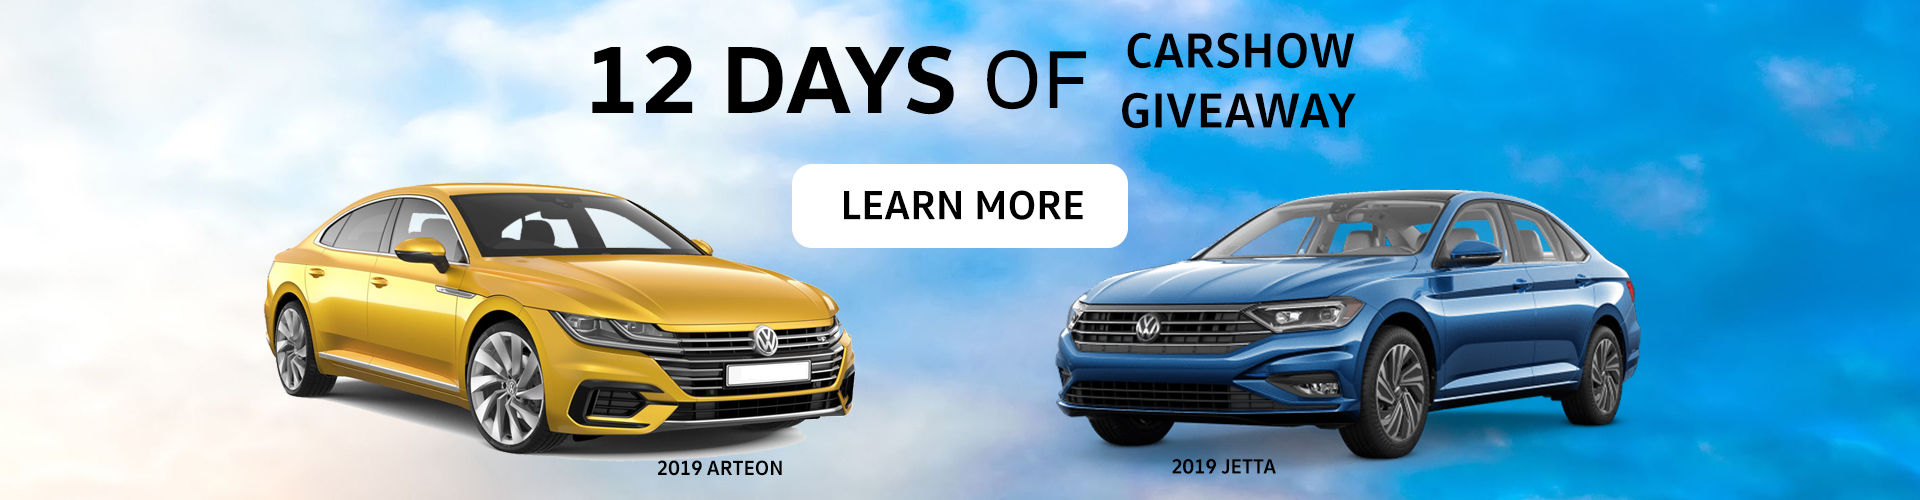 12 Days of Car Show Giveaway